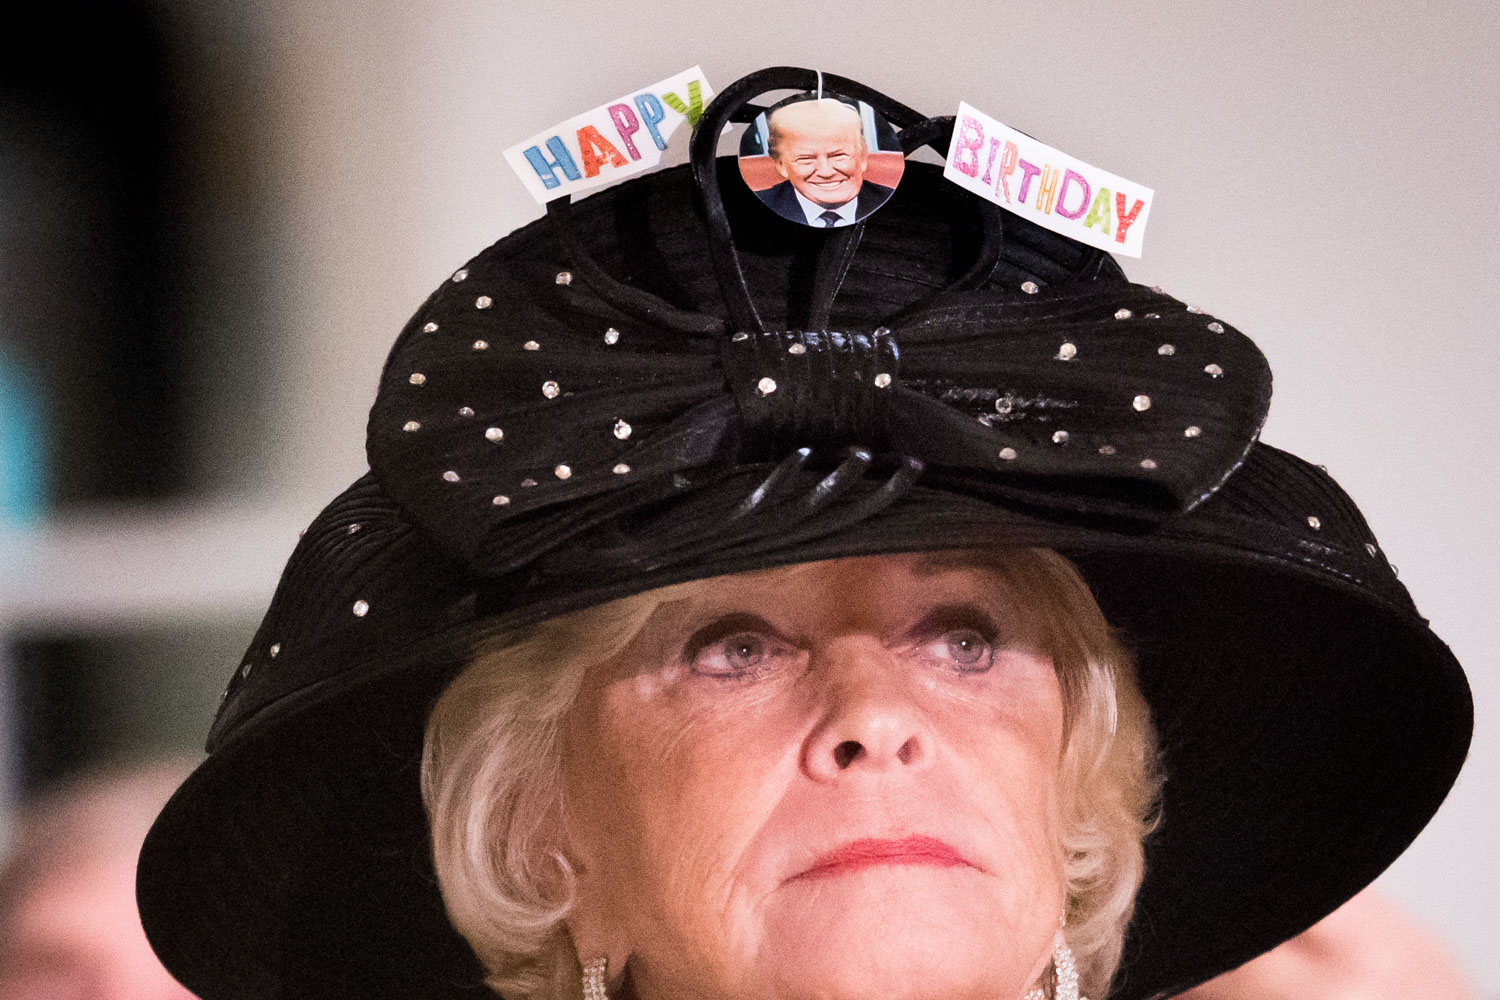 A guest at the Tea for Trump Birthday Extravaganza at the Trump Hotel in Washington, DC on June 24, 2018.